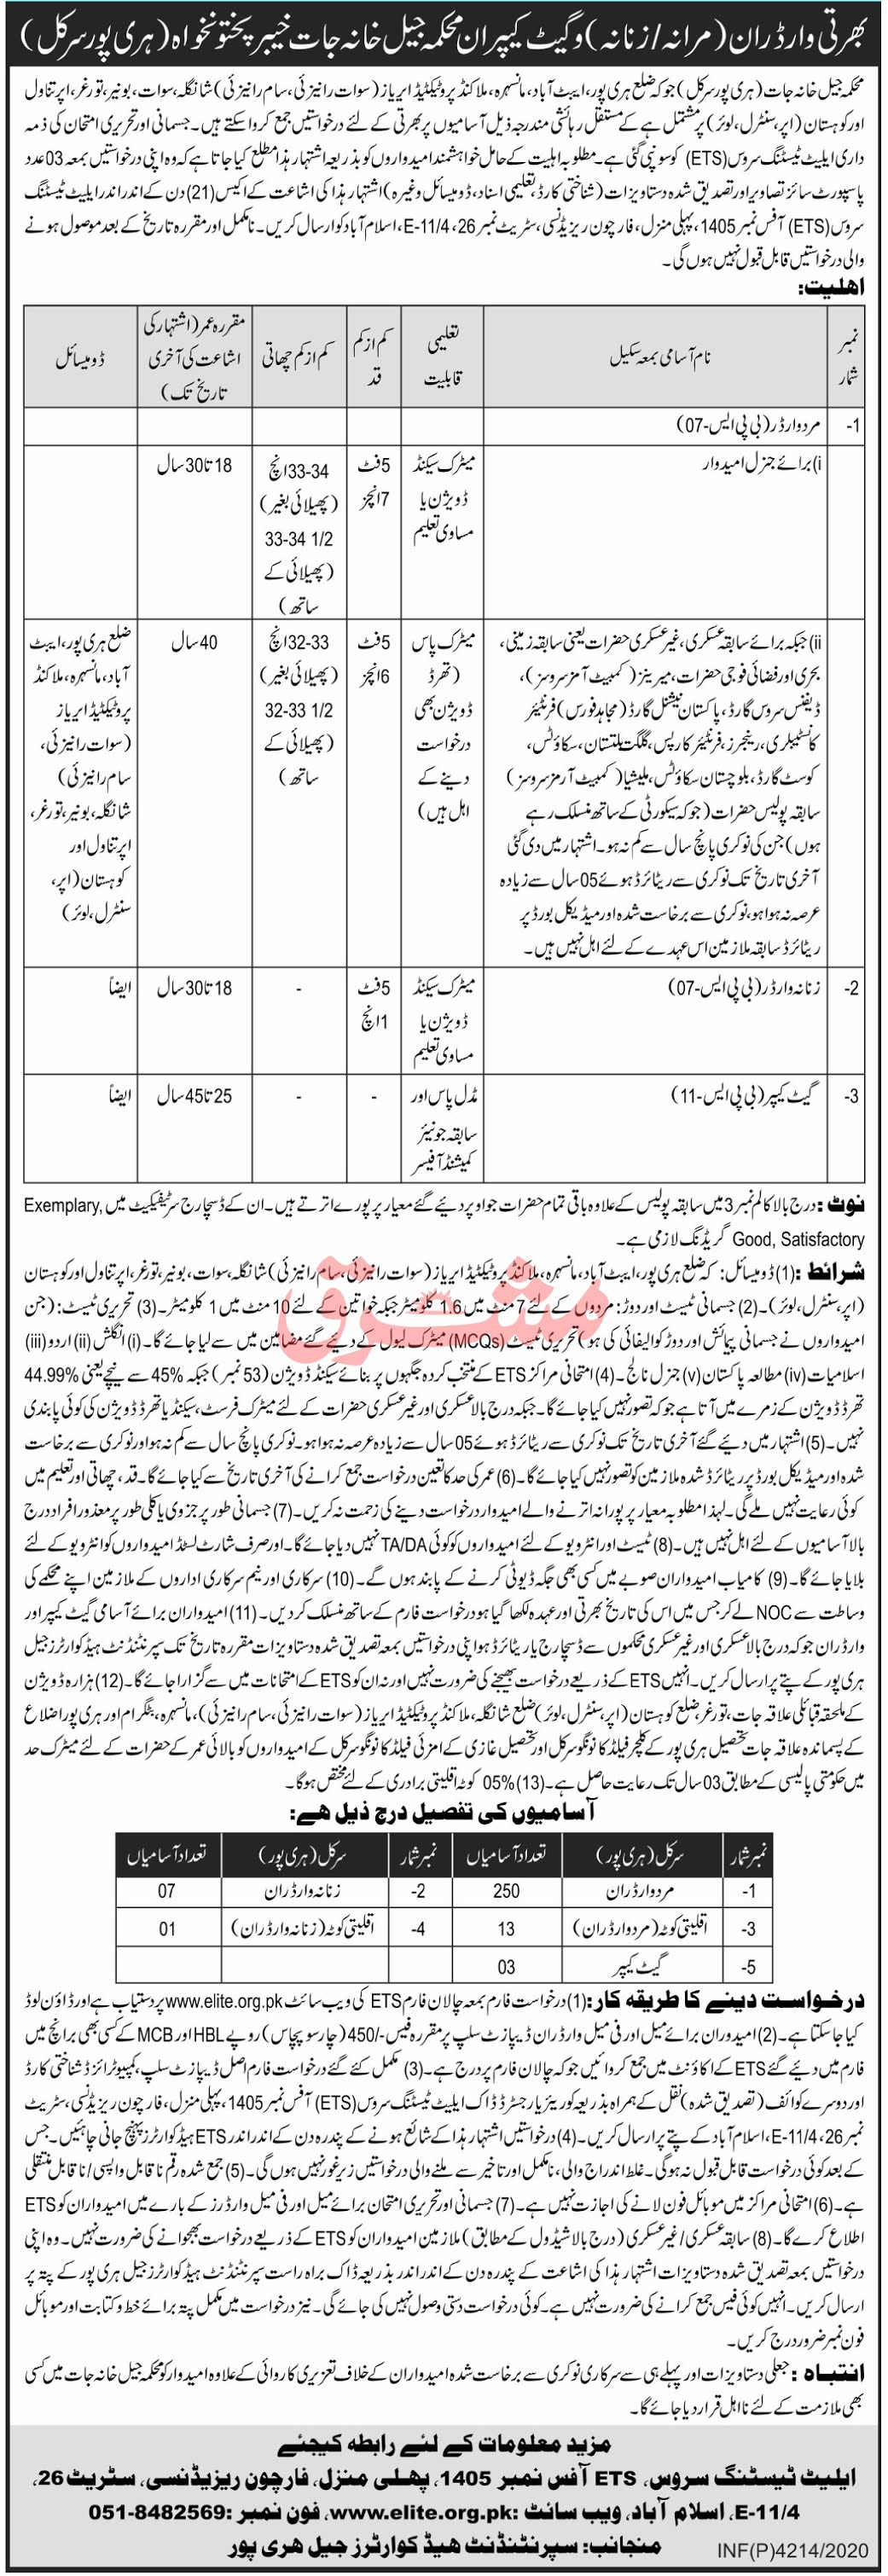 Prisons Police Department KPK Jobs 2020